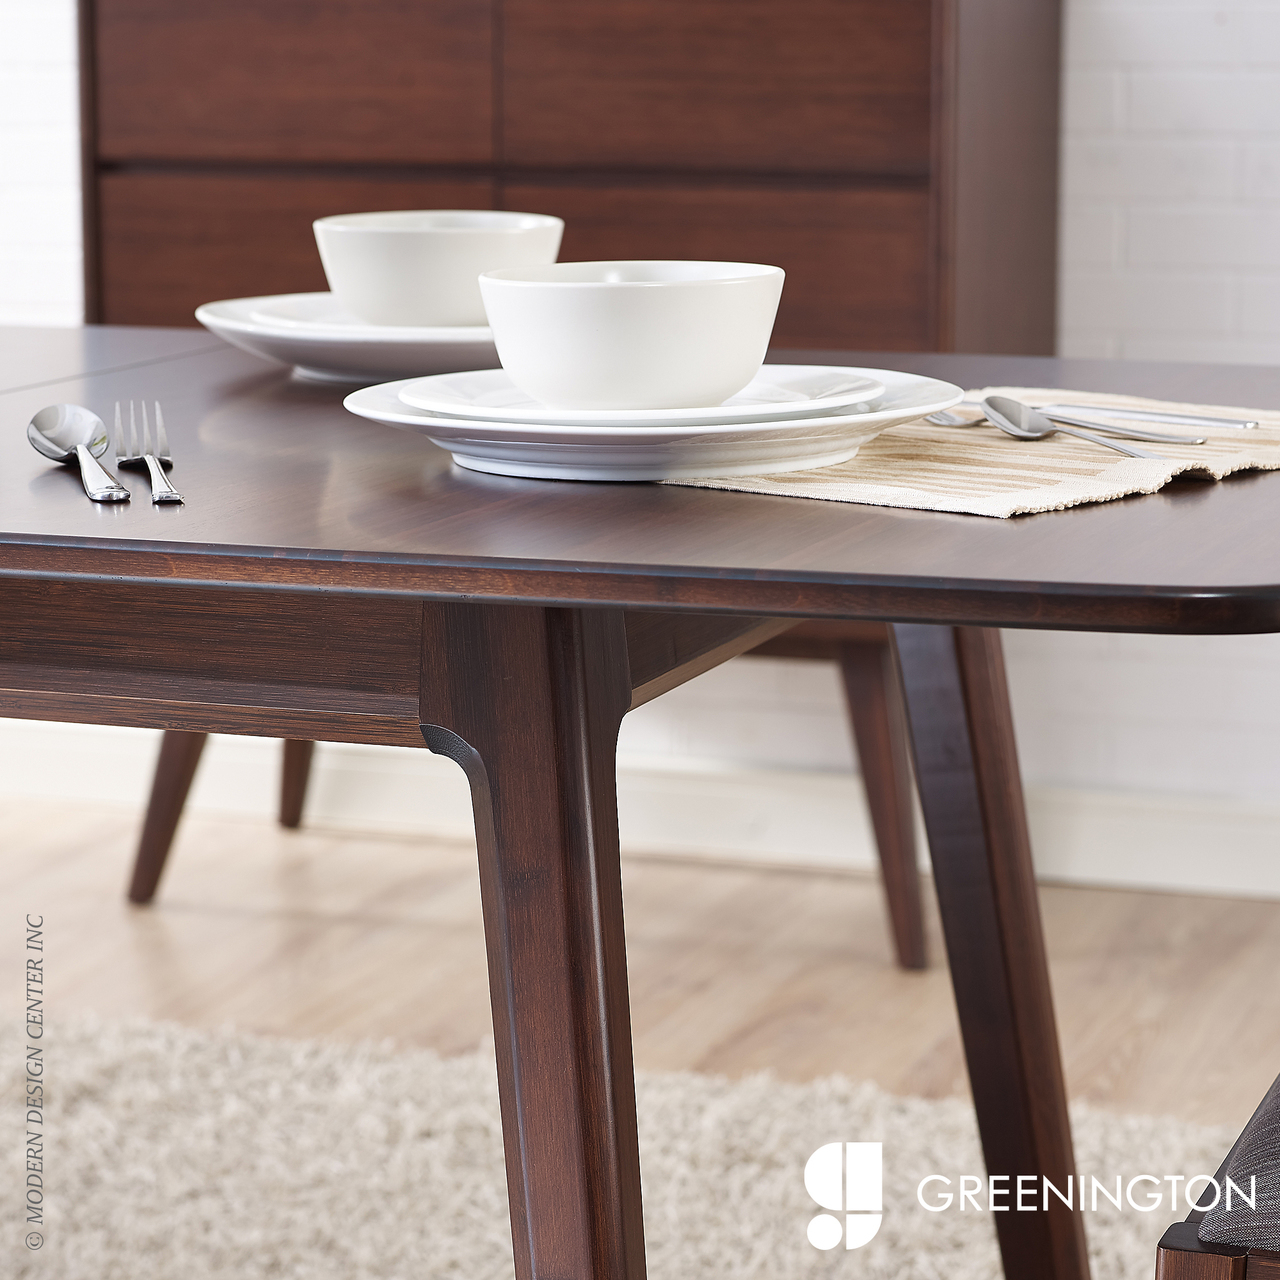 Laurel Extendable Dining Table | Greenington